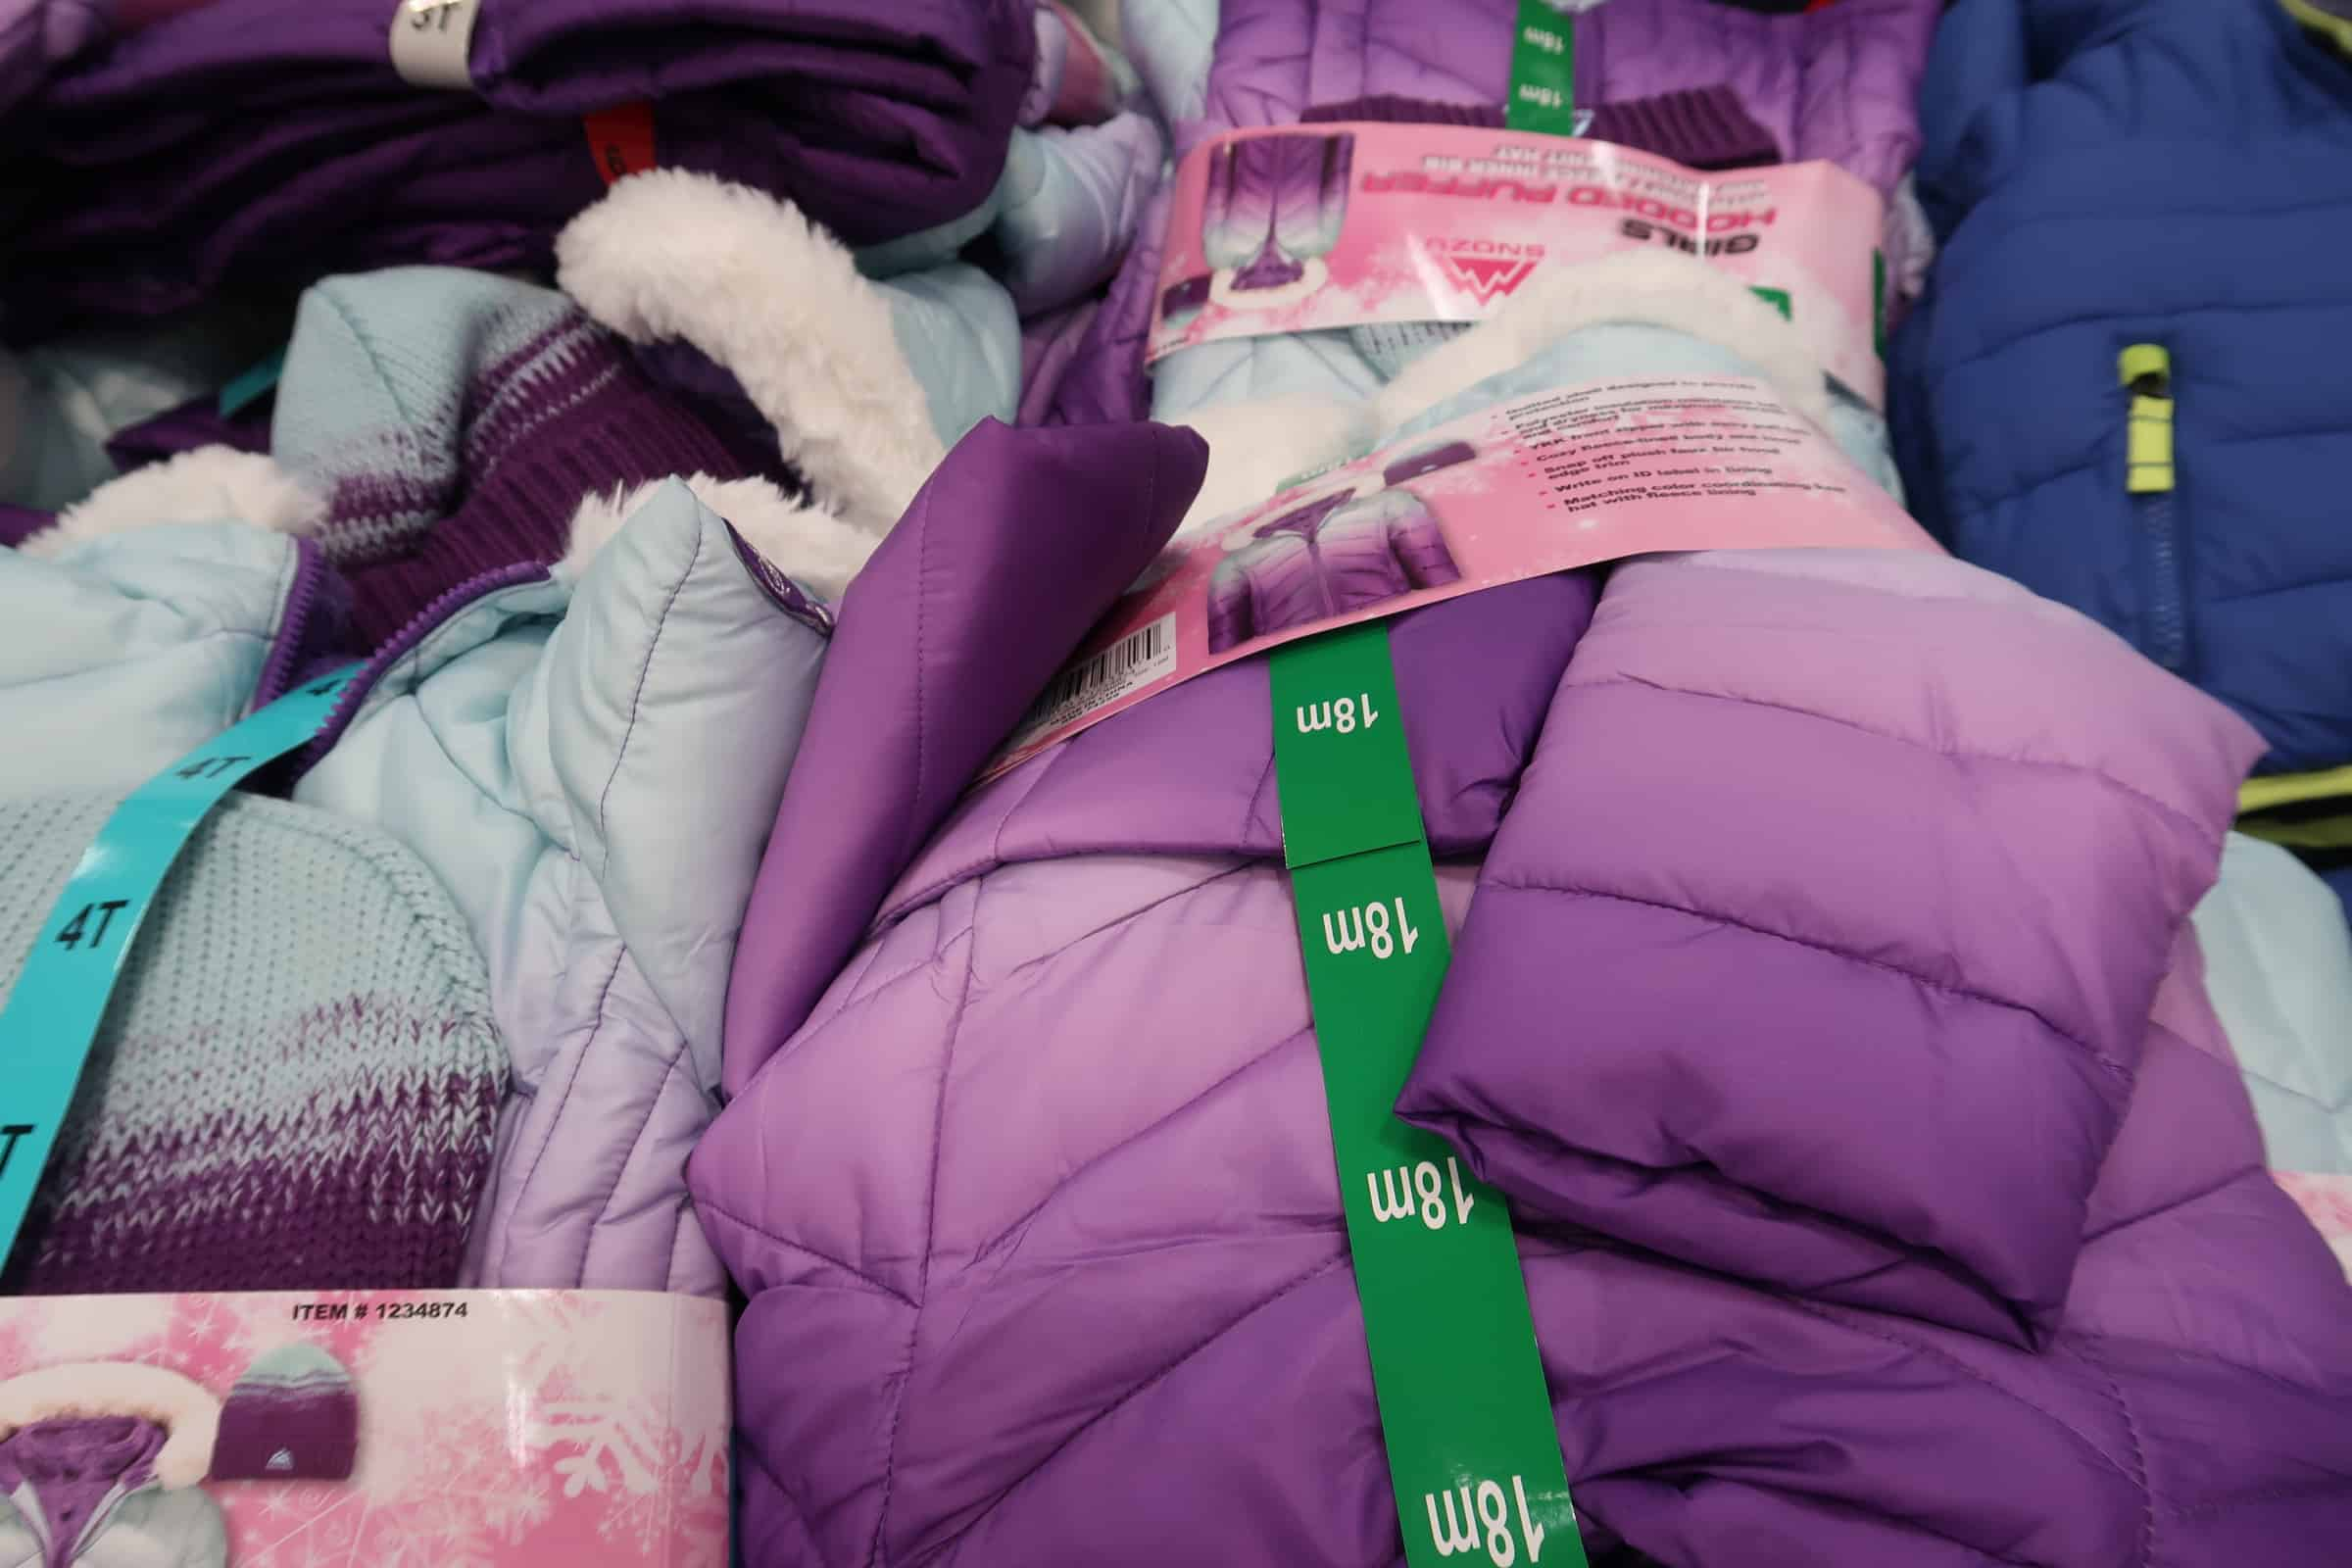 Snowpants and Winter Jackets Out at Costco